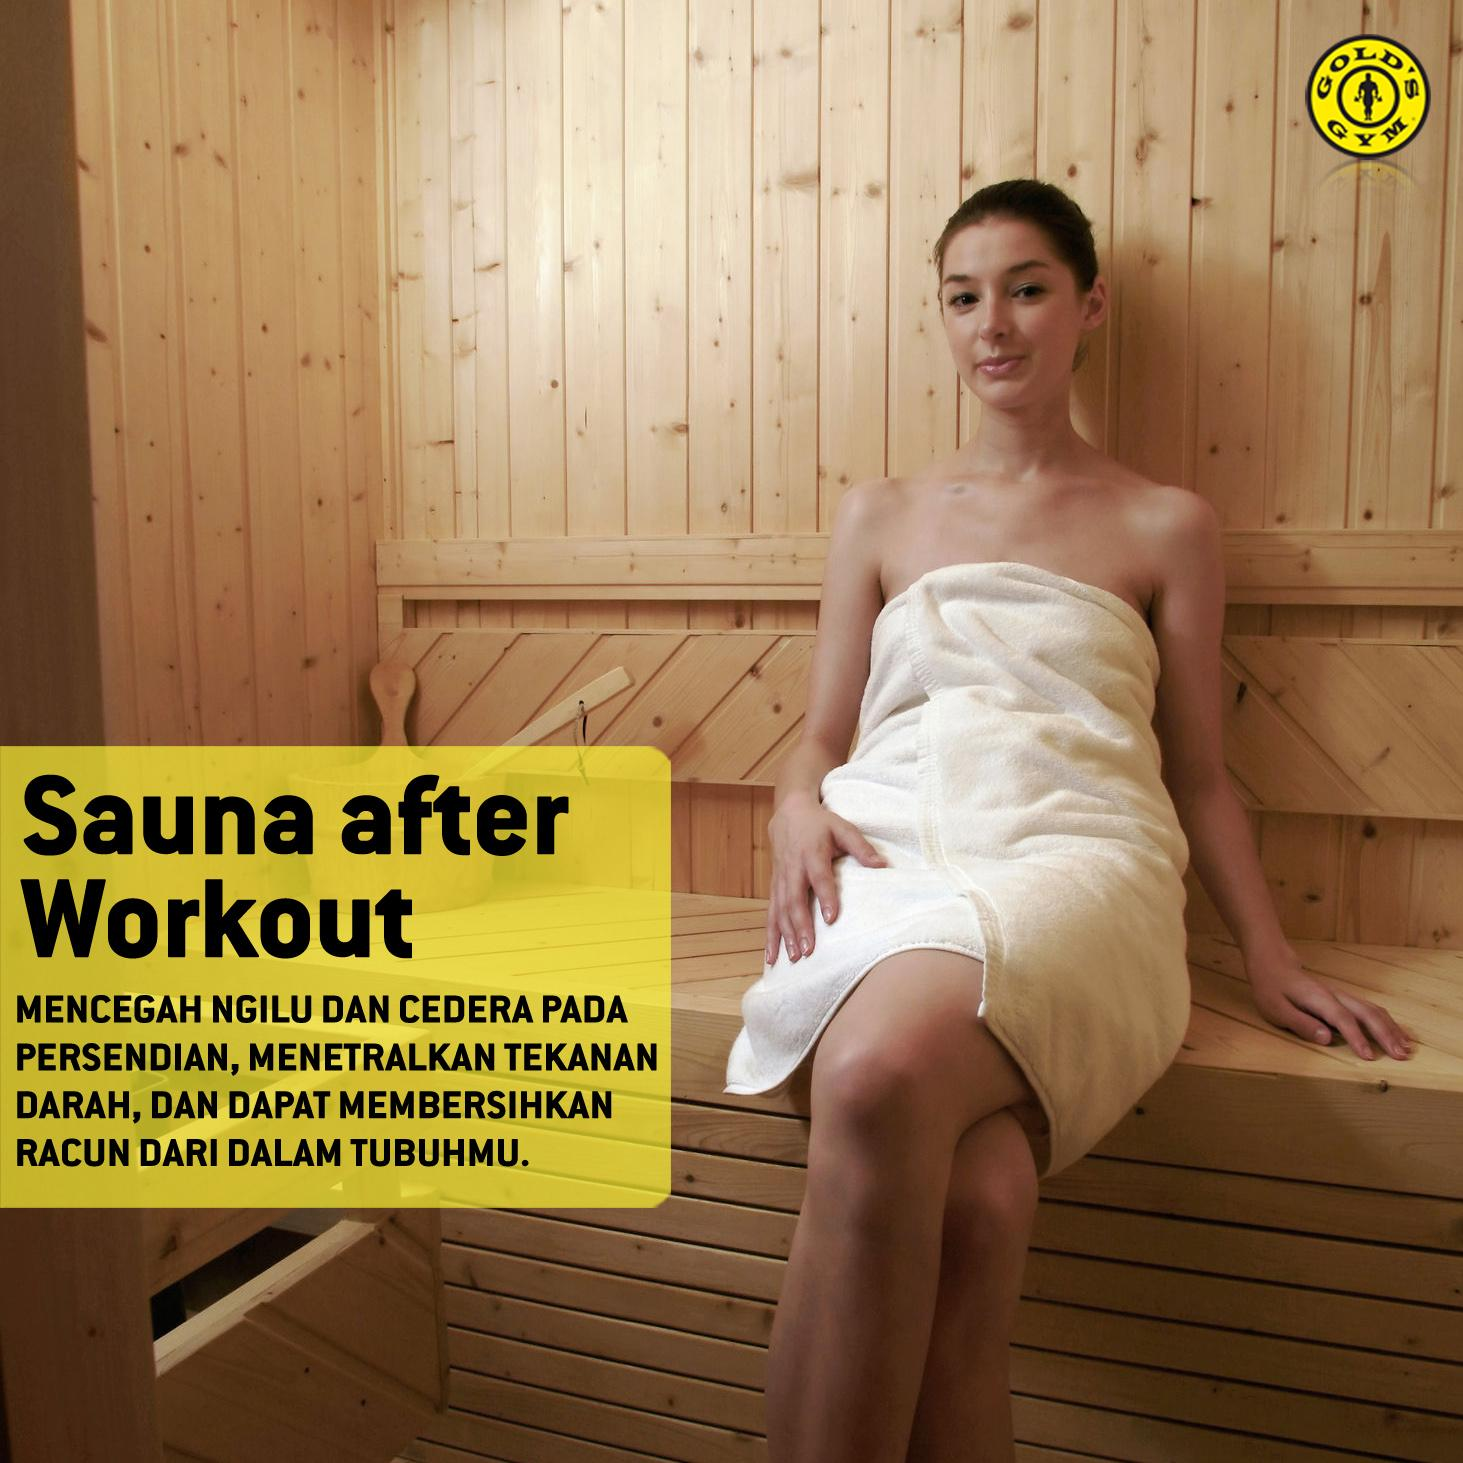 Gold S Gym Indonesia On Twitter Sauna After Workout Why Not Https T Co 3doydolnkj